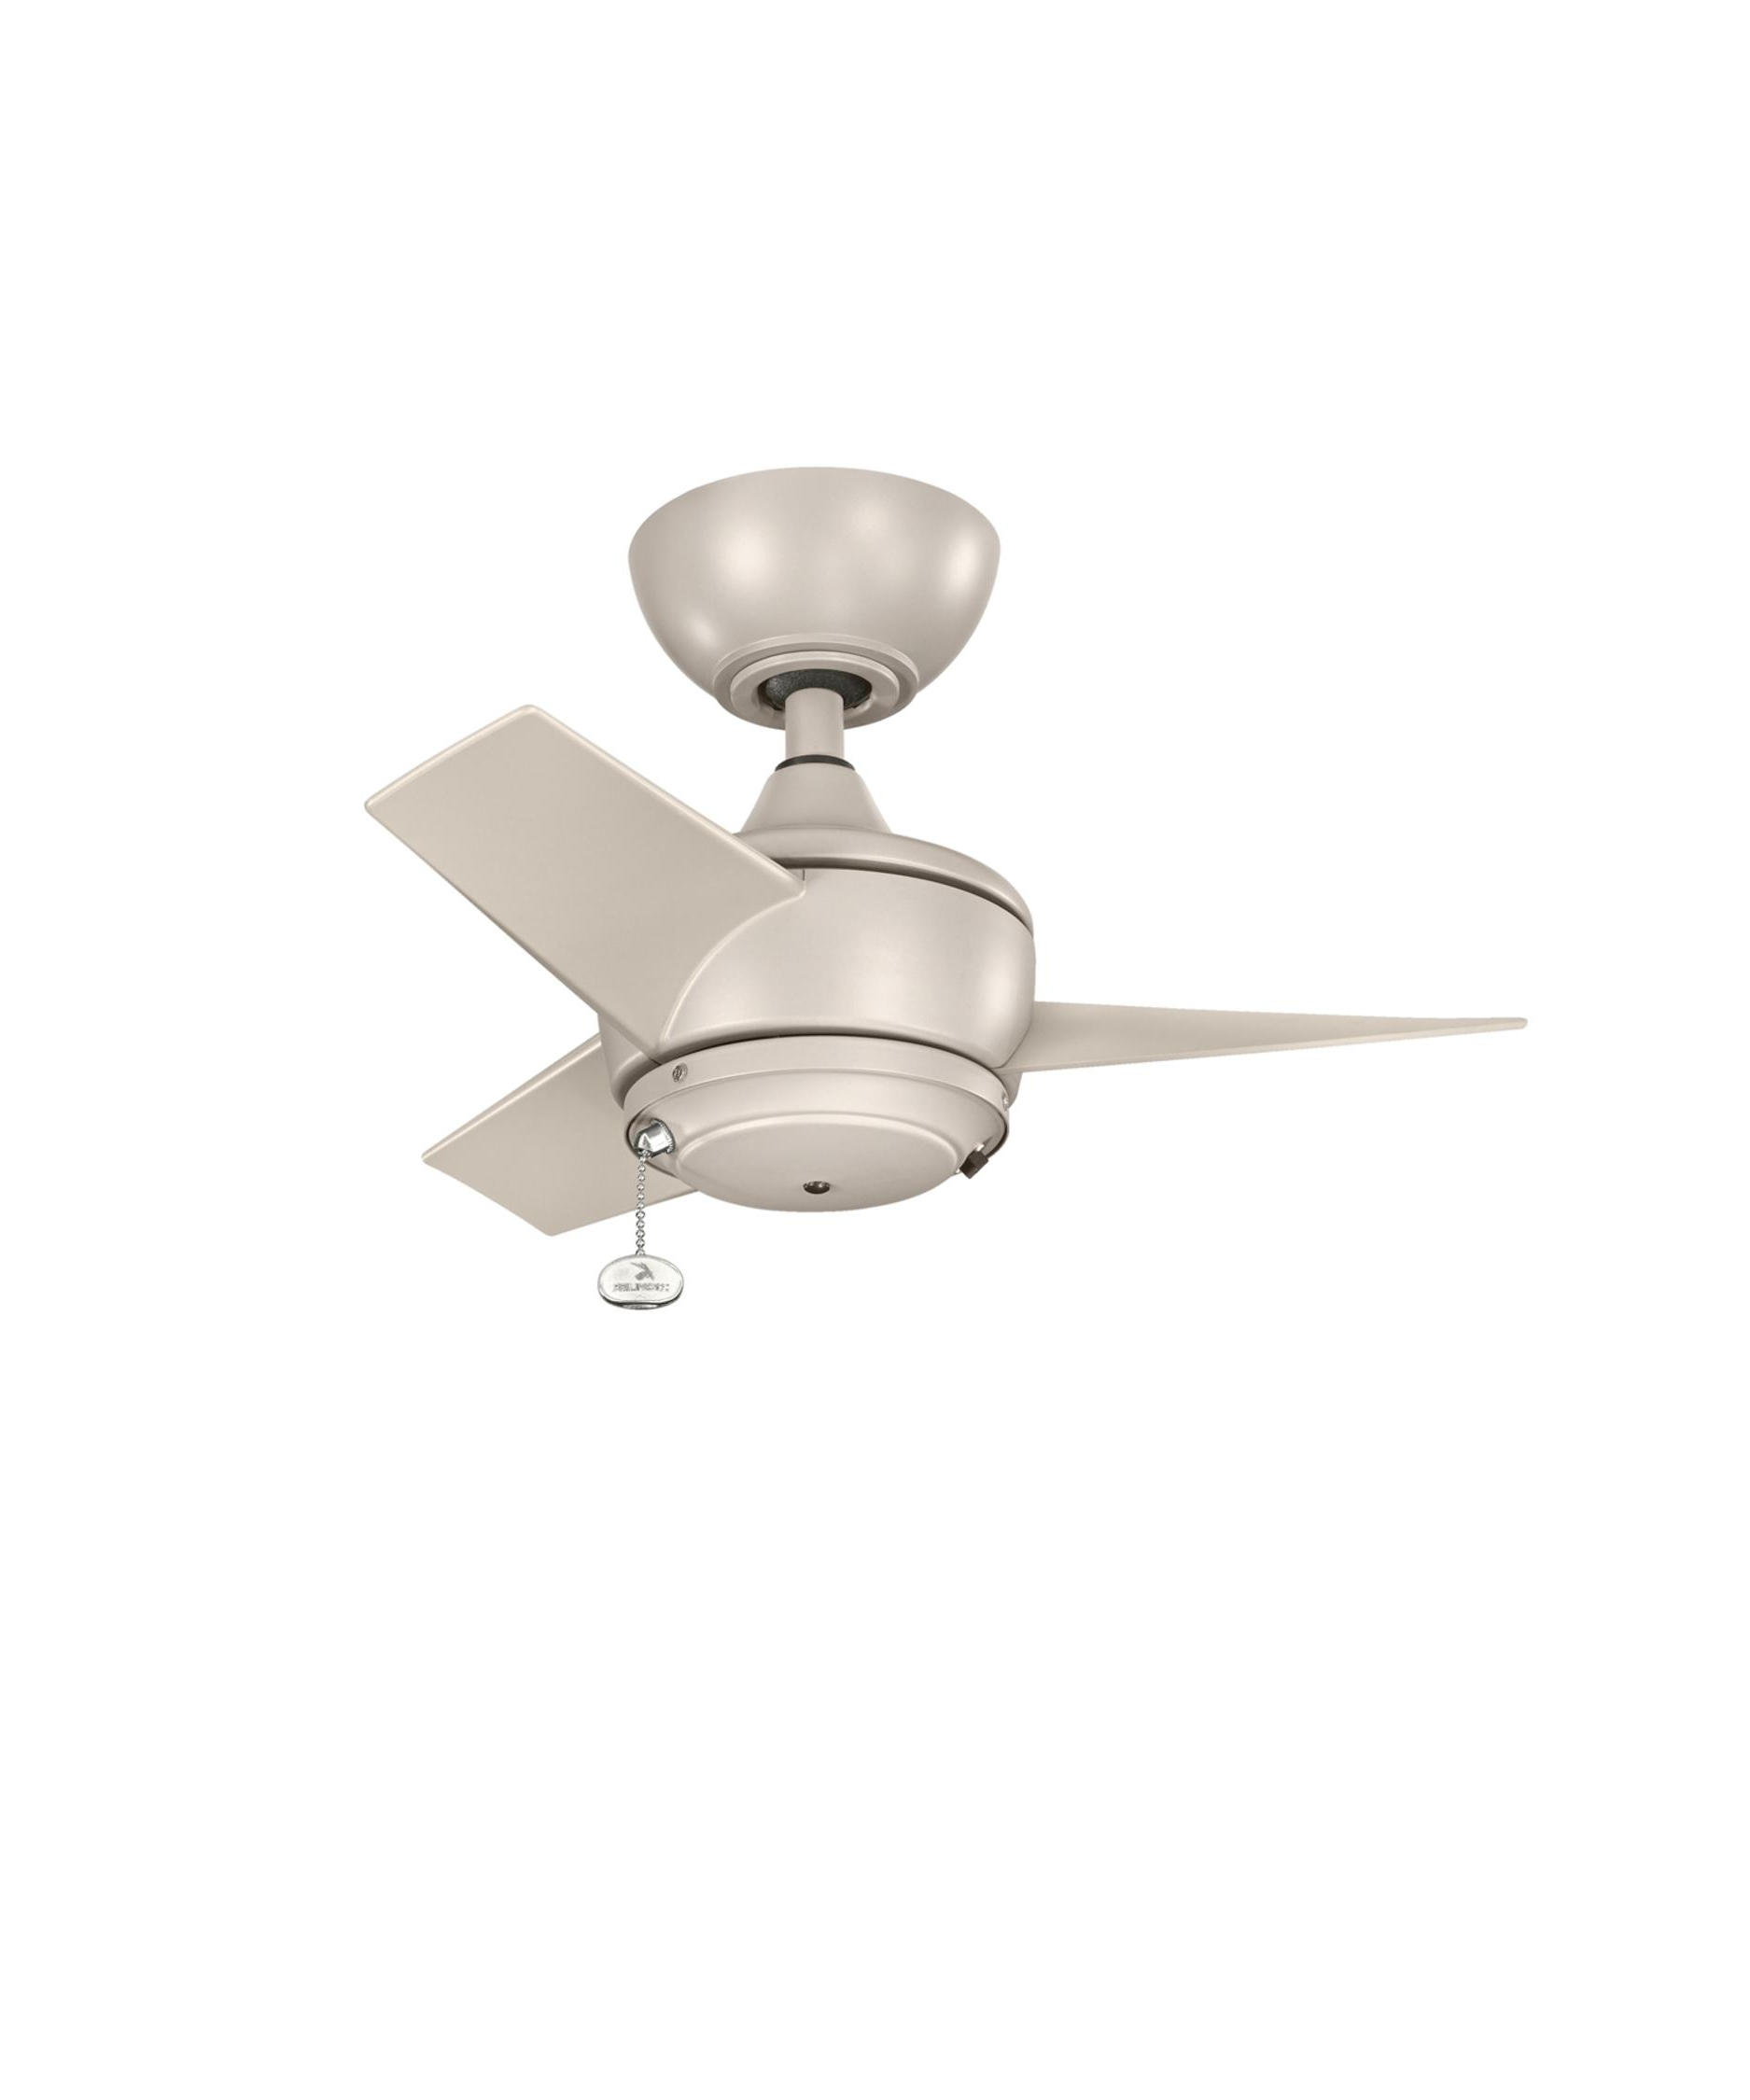 Capitol Lighting 1 Regarding Favorite 24 Inch Outdoor Ceiling Fans With Light (Gallery 16 of 20)